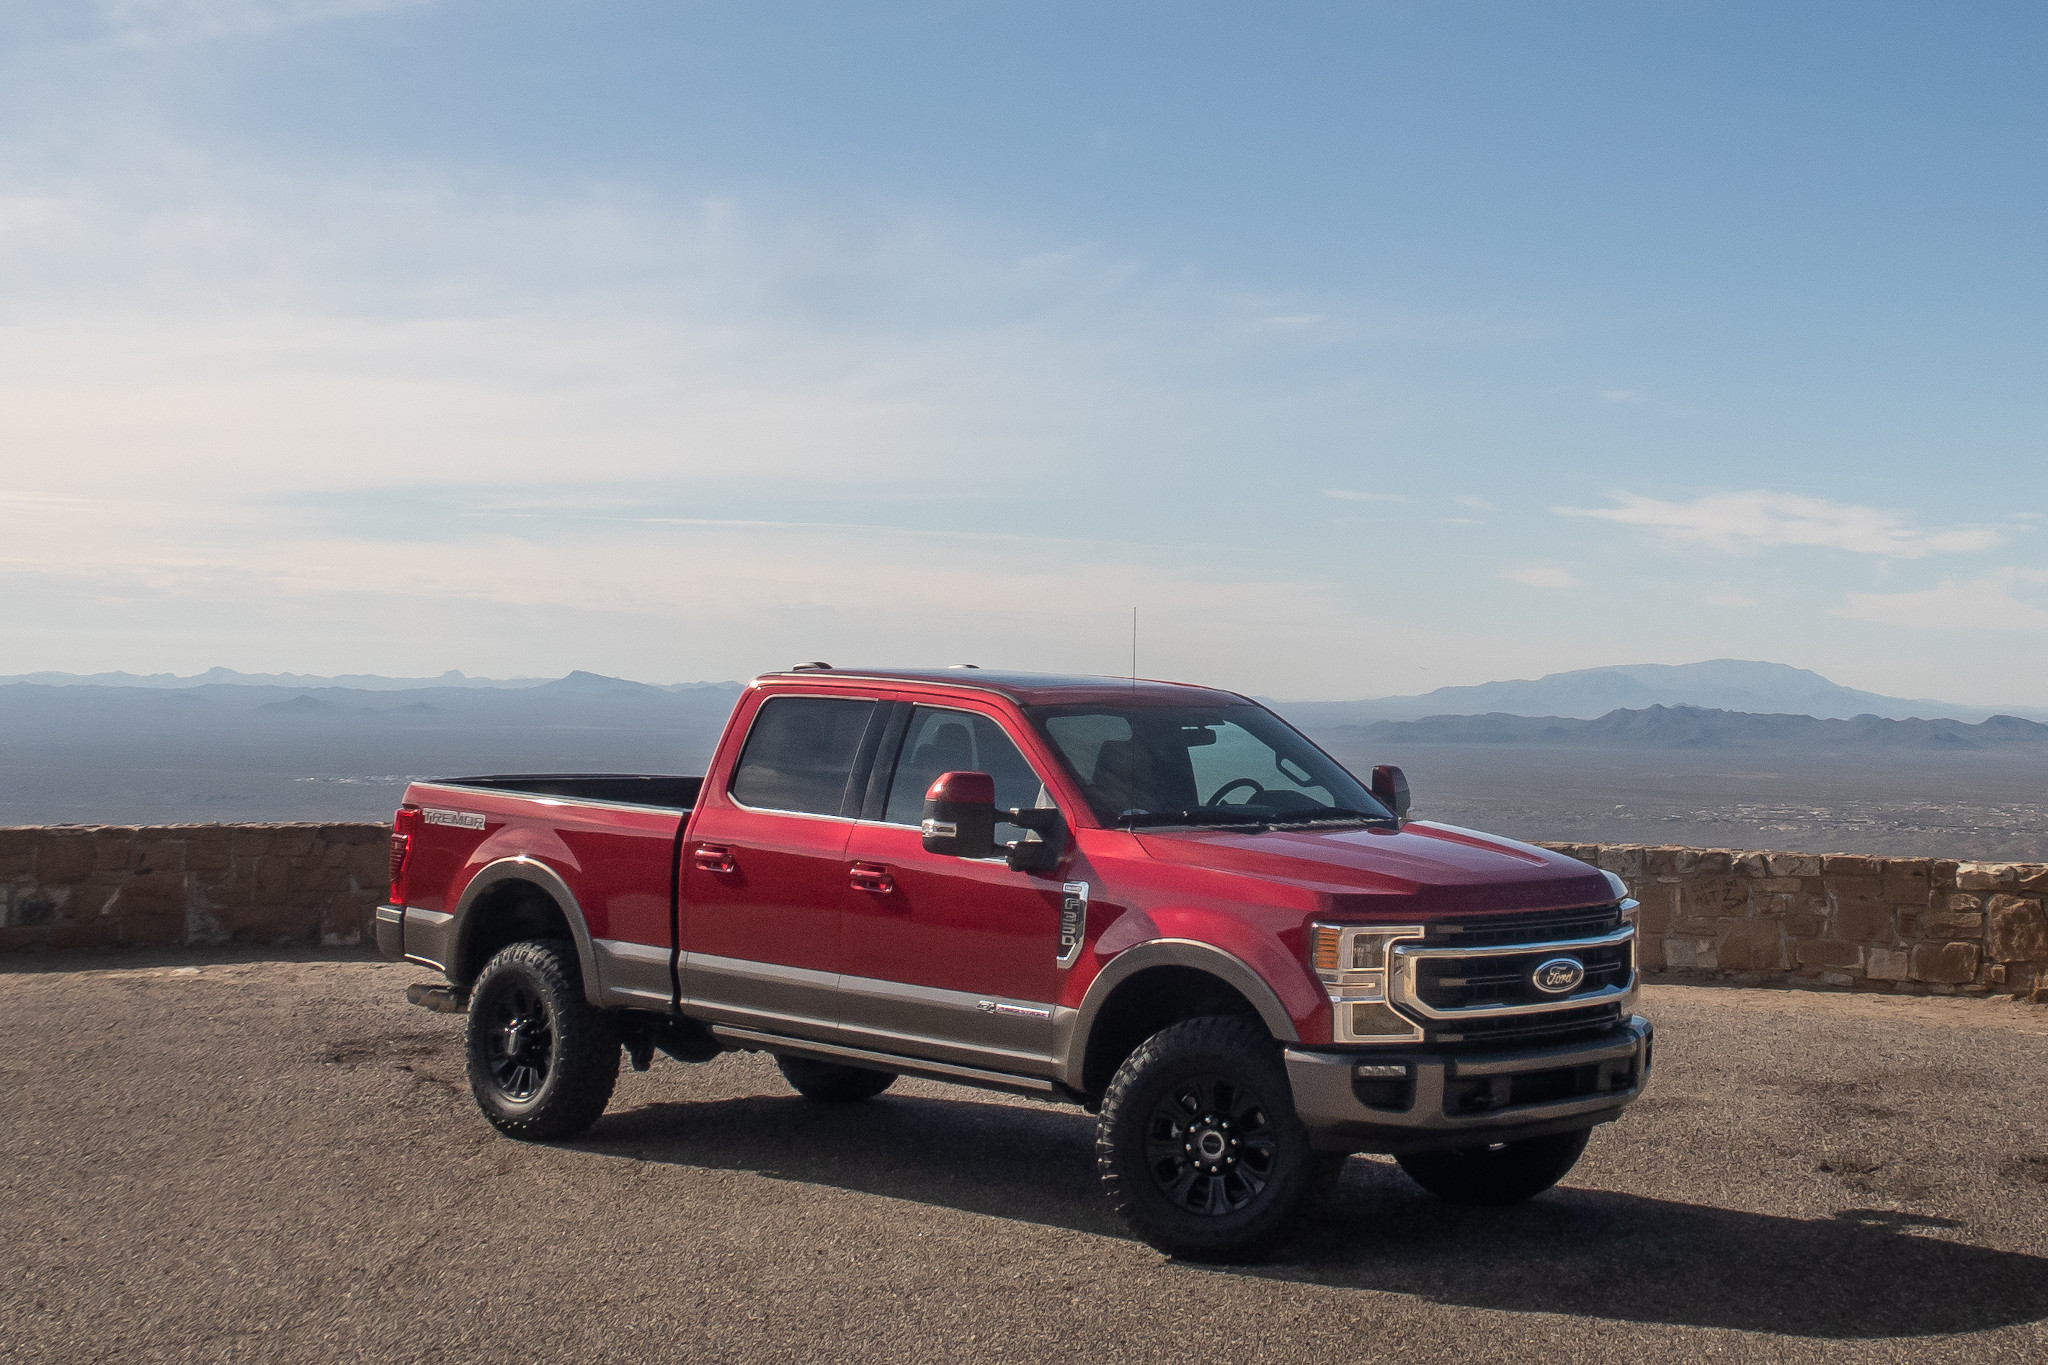 2020 Ford Super Duty F-250/F-350 Review: Finding New Power